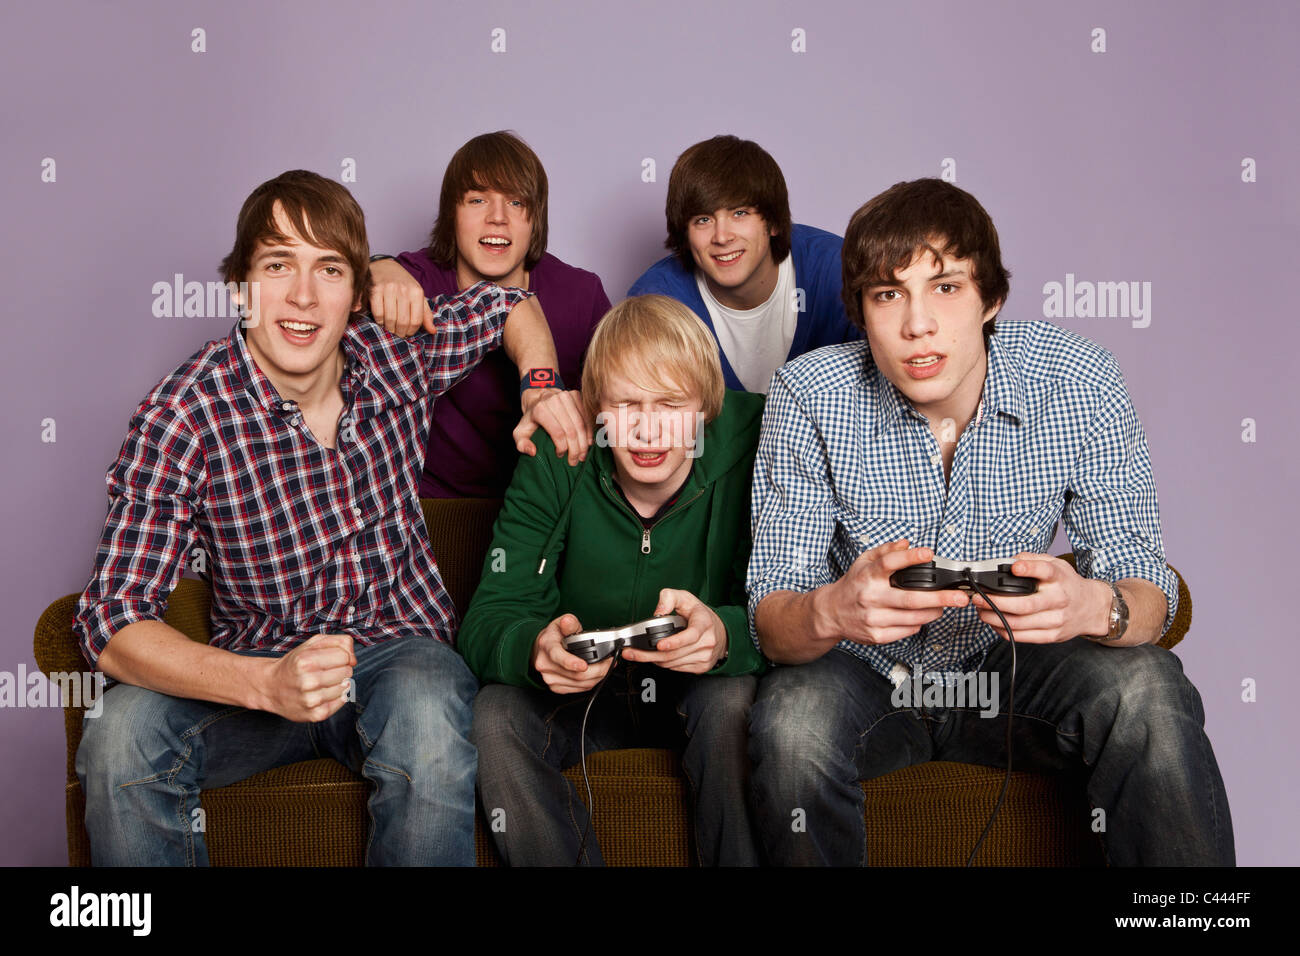 Two teenage boys playing a video game while their friends cheer them on - Stock Image